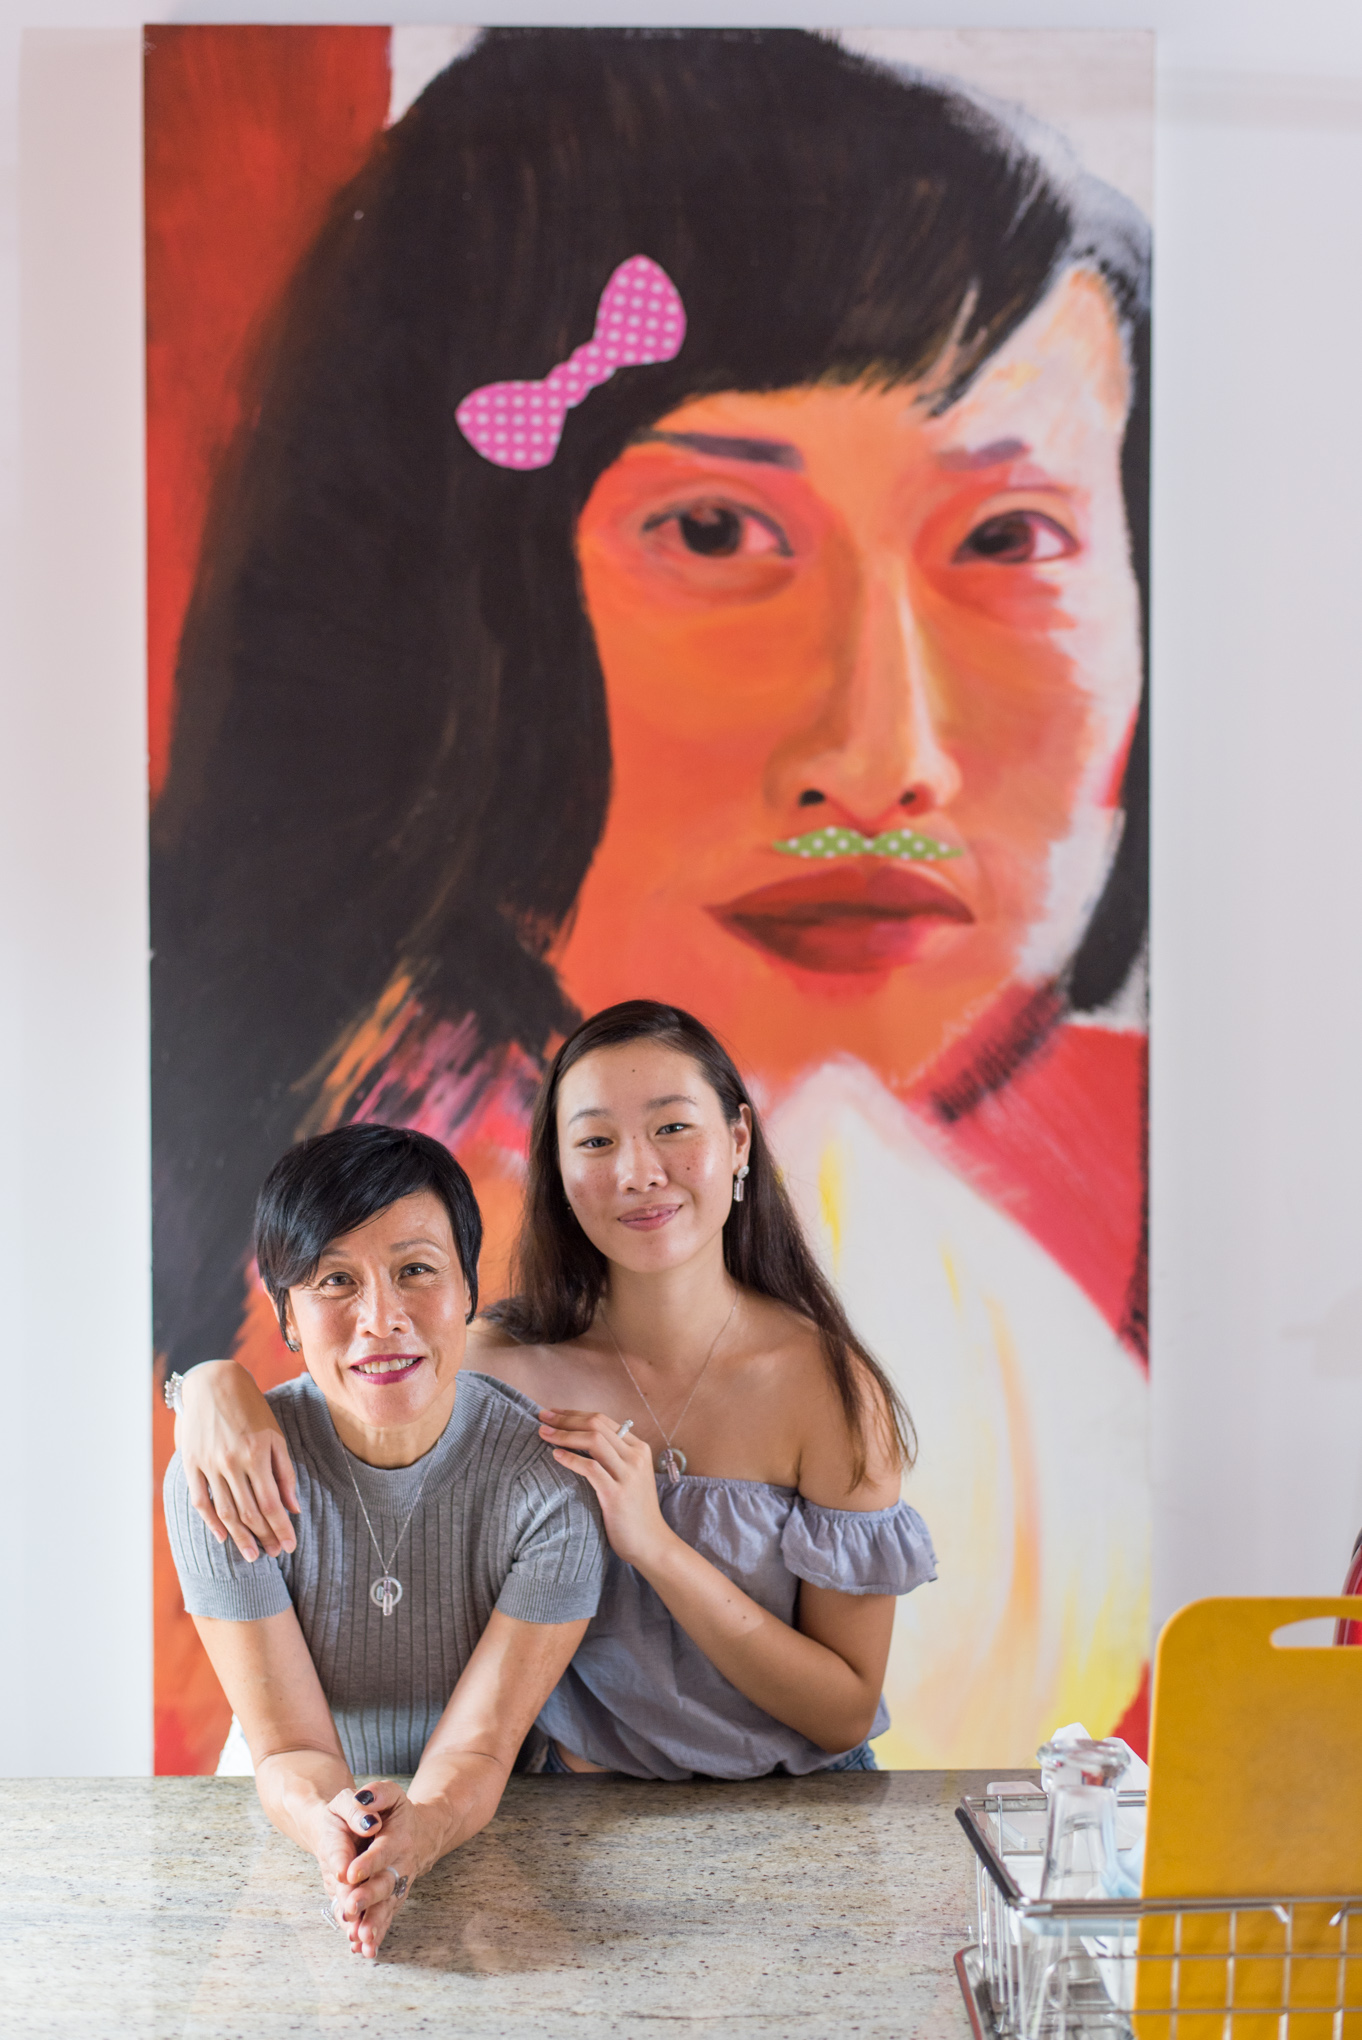 At the heart of any Choo Yilin narrative, is above all,love. - And with love comes the second instalment of Heritage Stories. We speak with Tan Kheng Hua: mother, veteran of Singapore theatre, award-winning actress and producer; and her spirited daughter, Lim Shi-An.Together, they welcome us into their most special space:Home.From the very first step into their Joo Chiat Shophouse, their abode spoke volumes of their expressive characters. Vibrant colours decked the walls, tasteful wood furniture projected a warmth throughout the space, and personal touches of portraits and trinkets offered us a glimpse into their shared passion for the Arts.. there is a story behind them all, and we are excited to share them with you today.